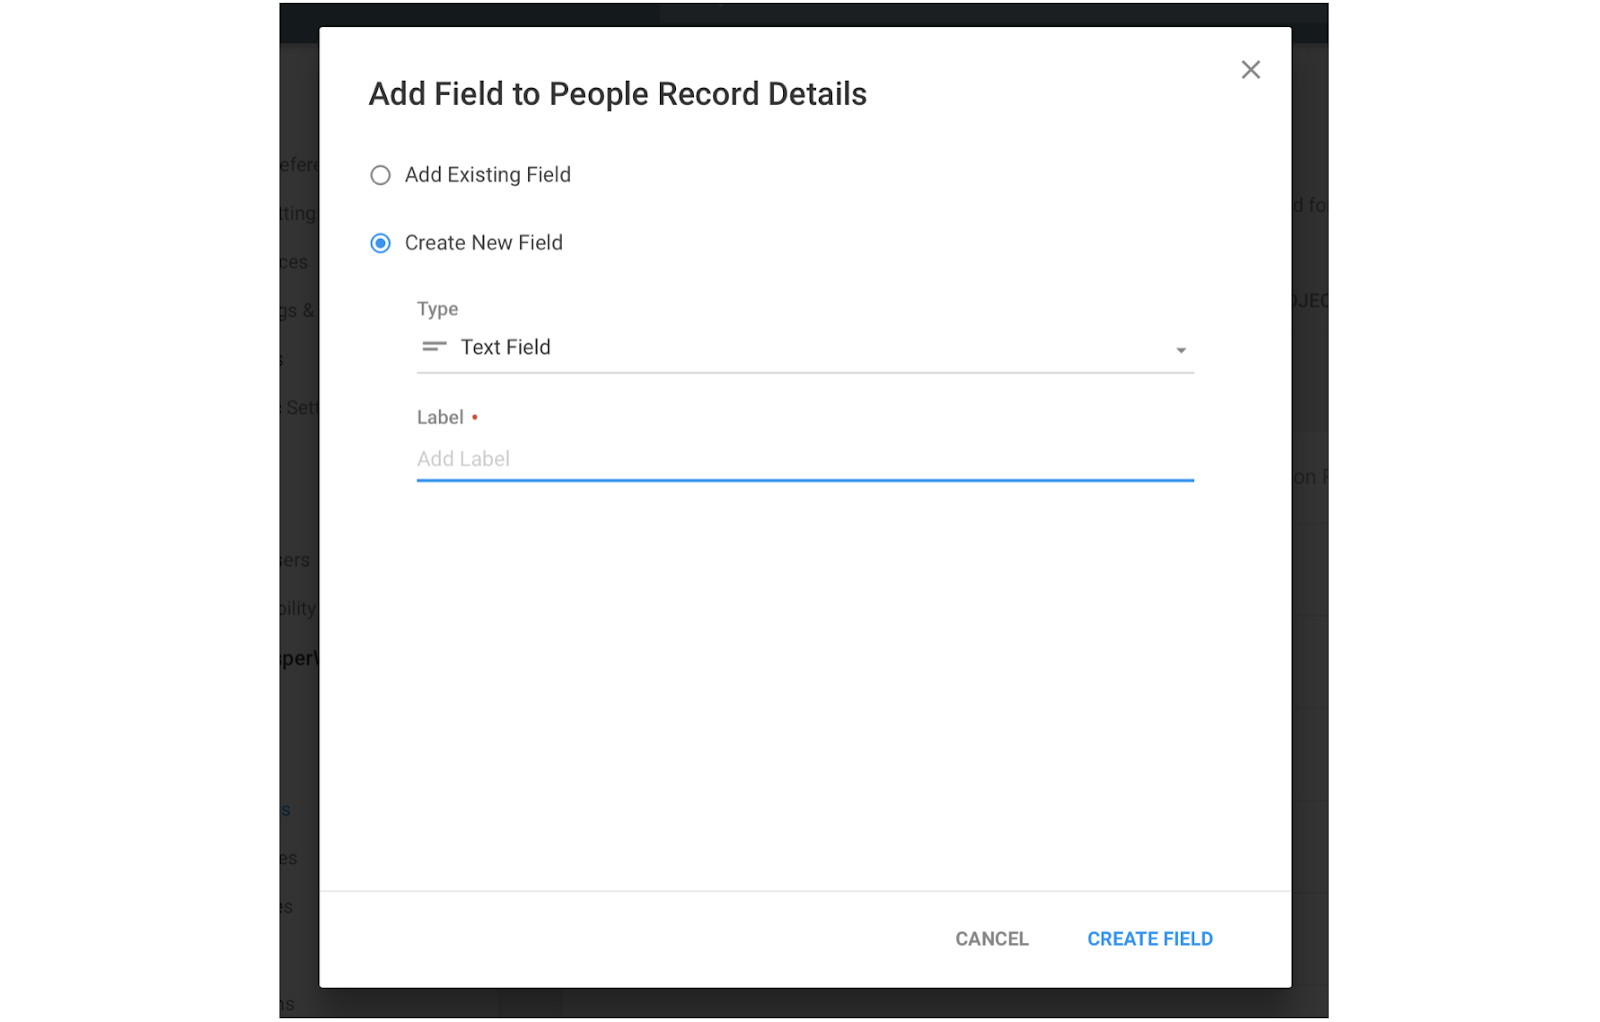 Copper CRM lets you add custom fields to each person's record